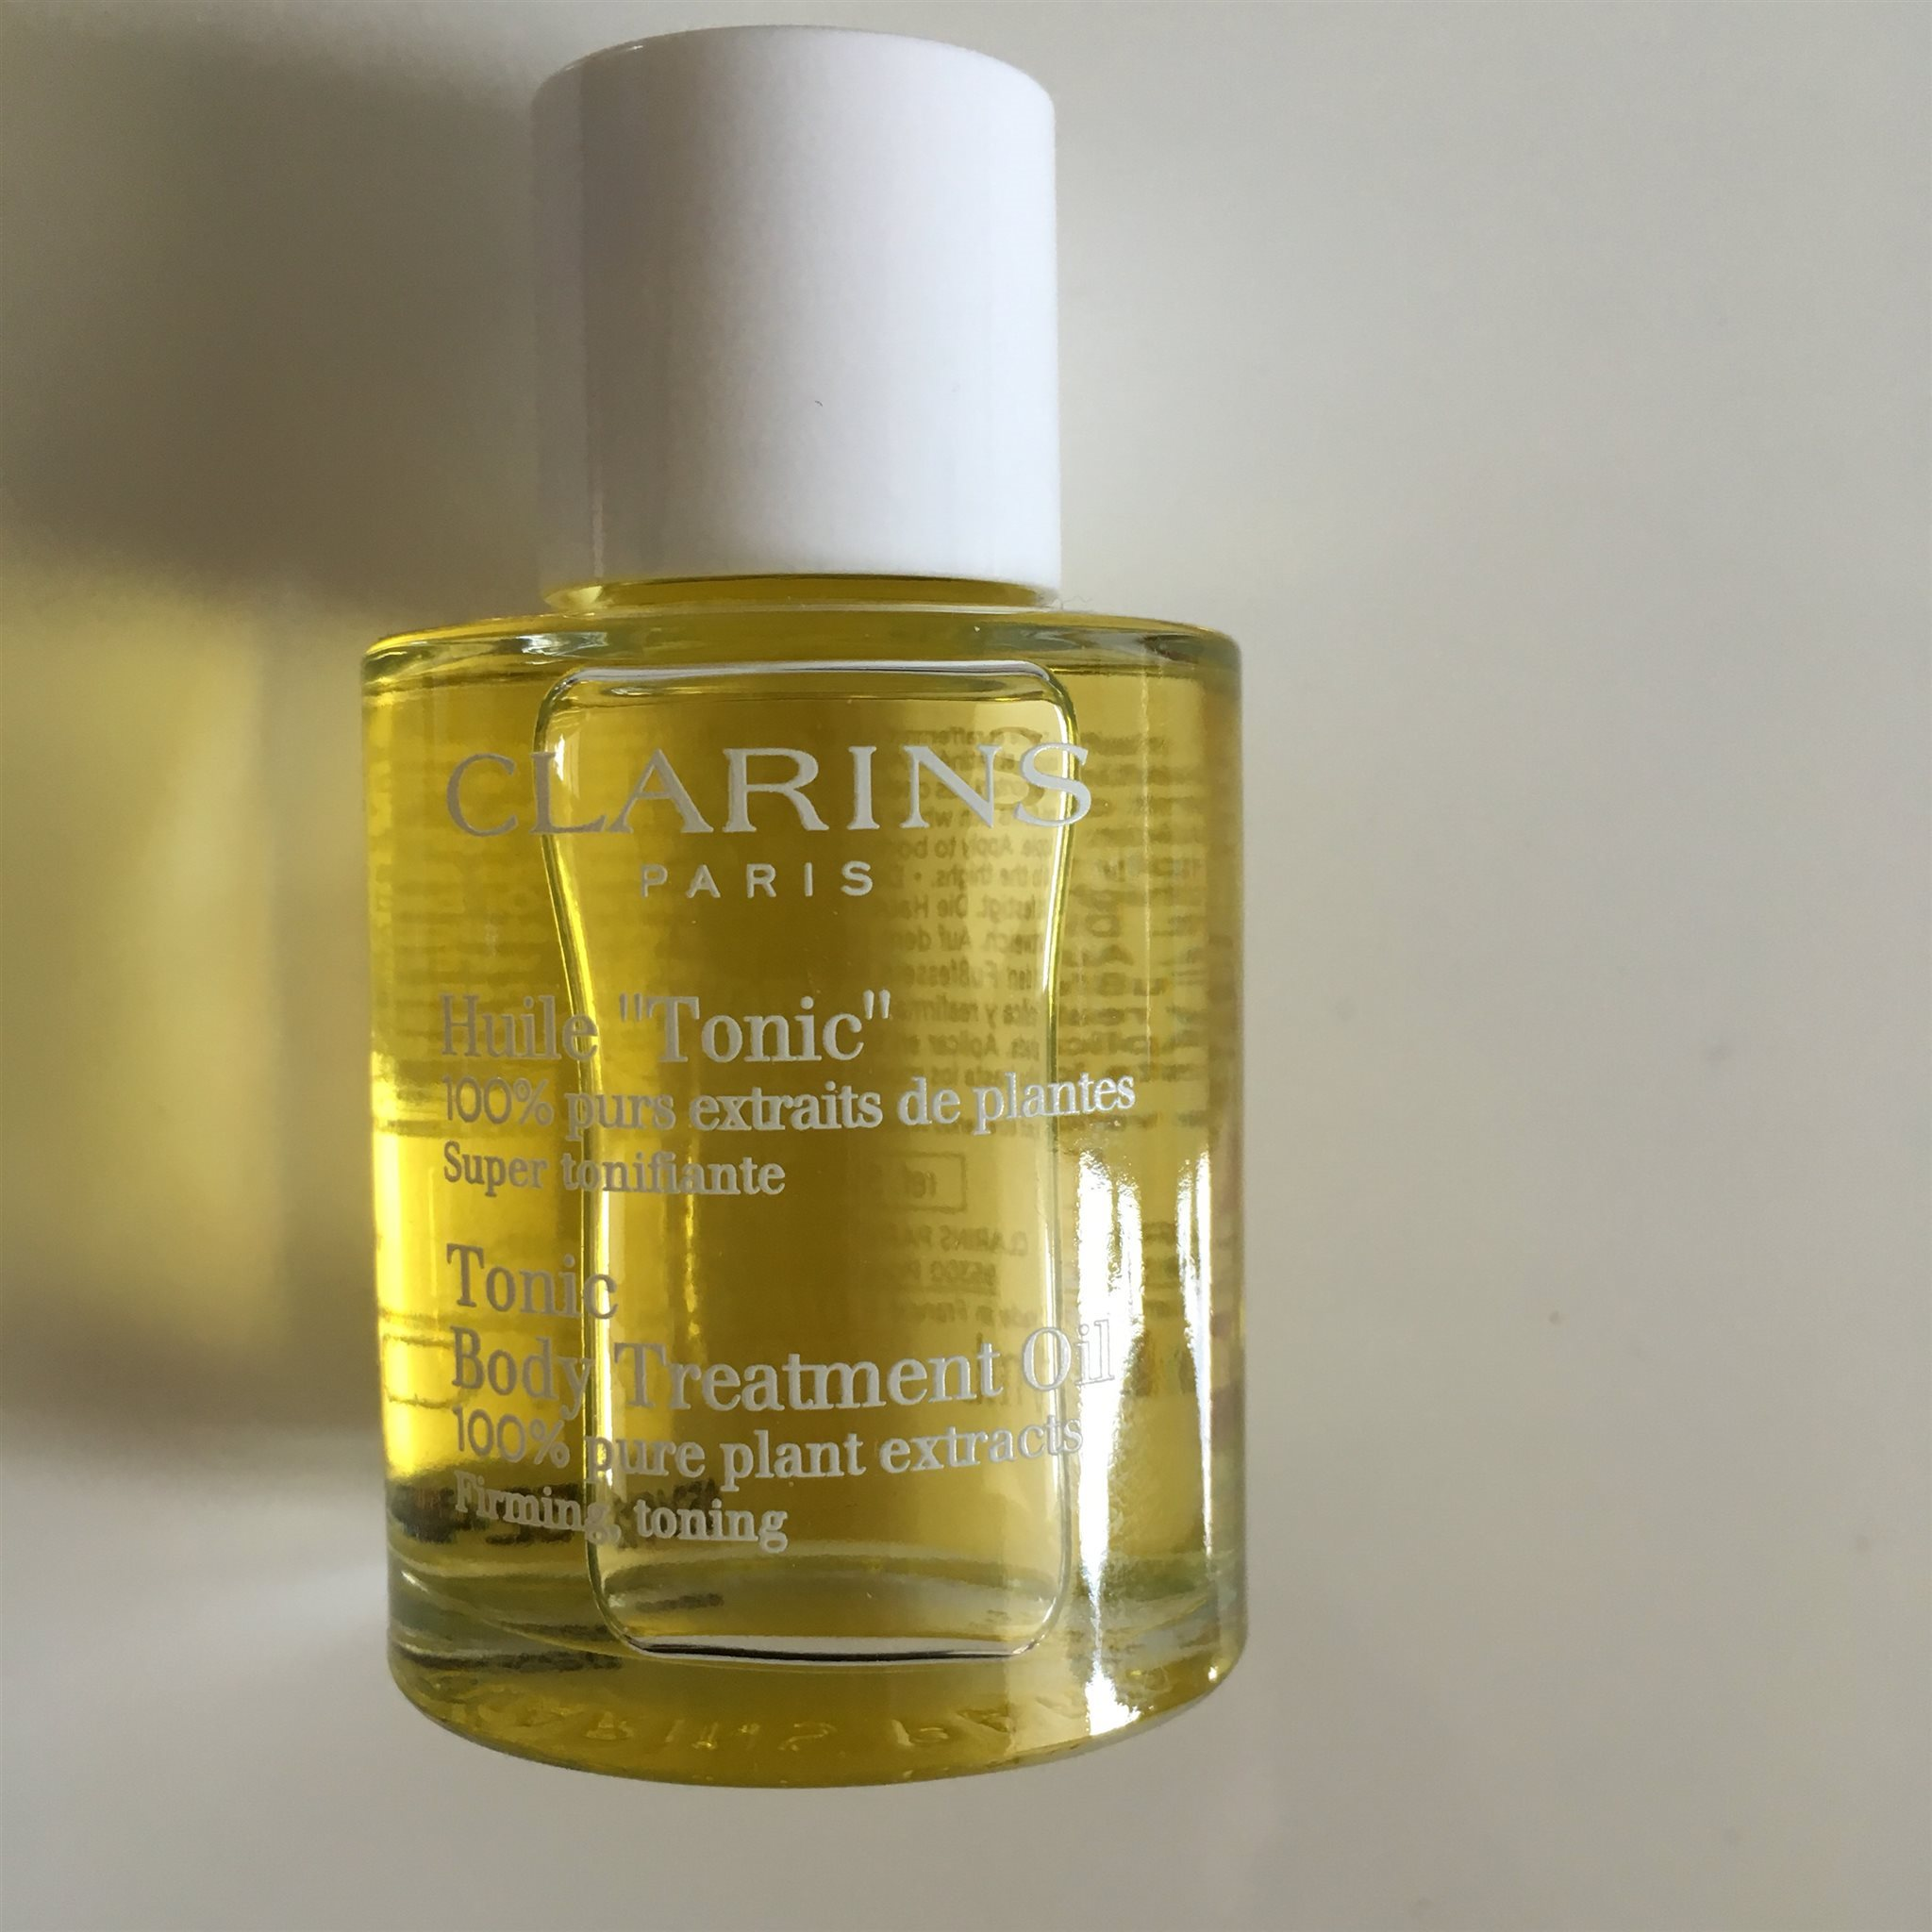 Clarins Tonic Body Treatment Oil 313976964 Kp P Tradera 30ml